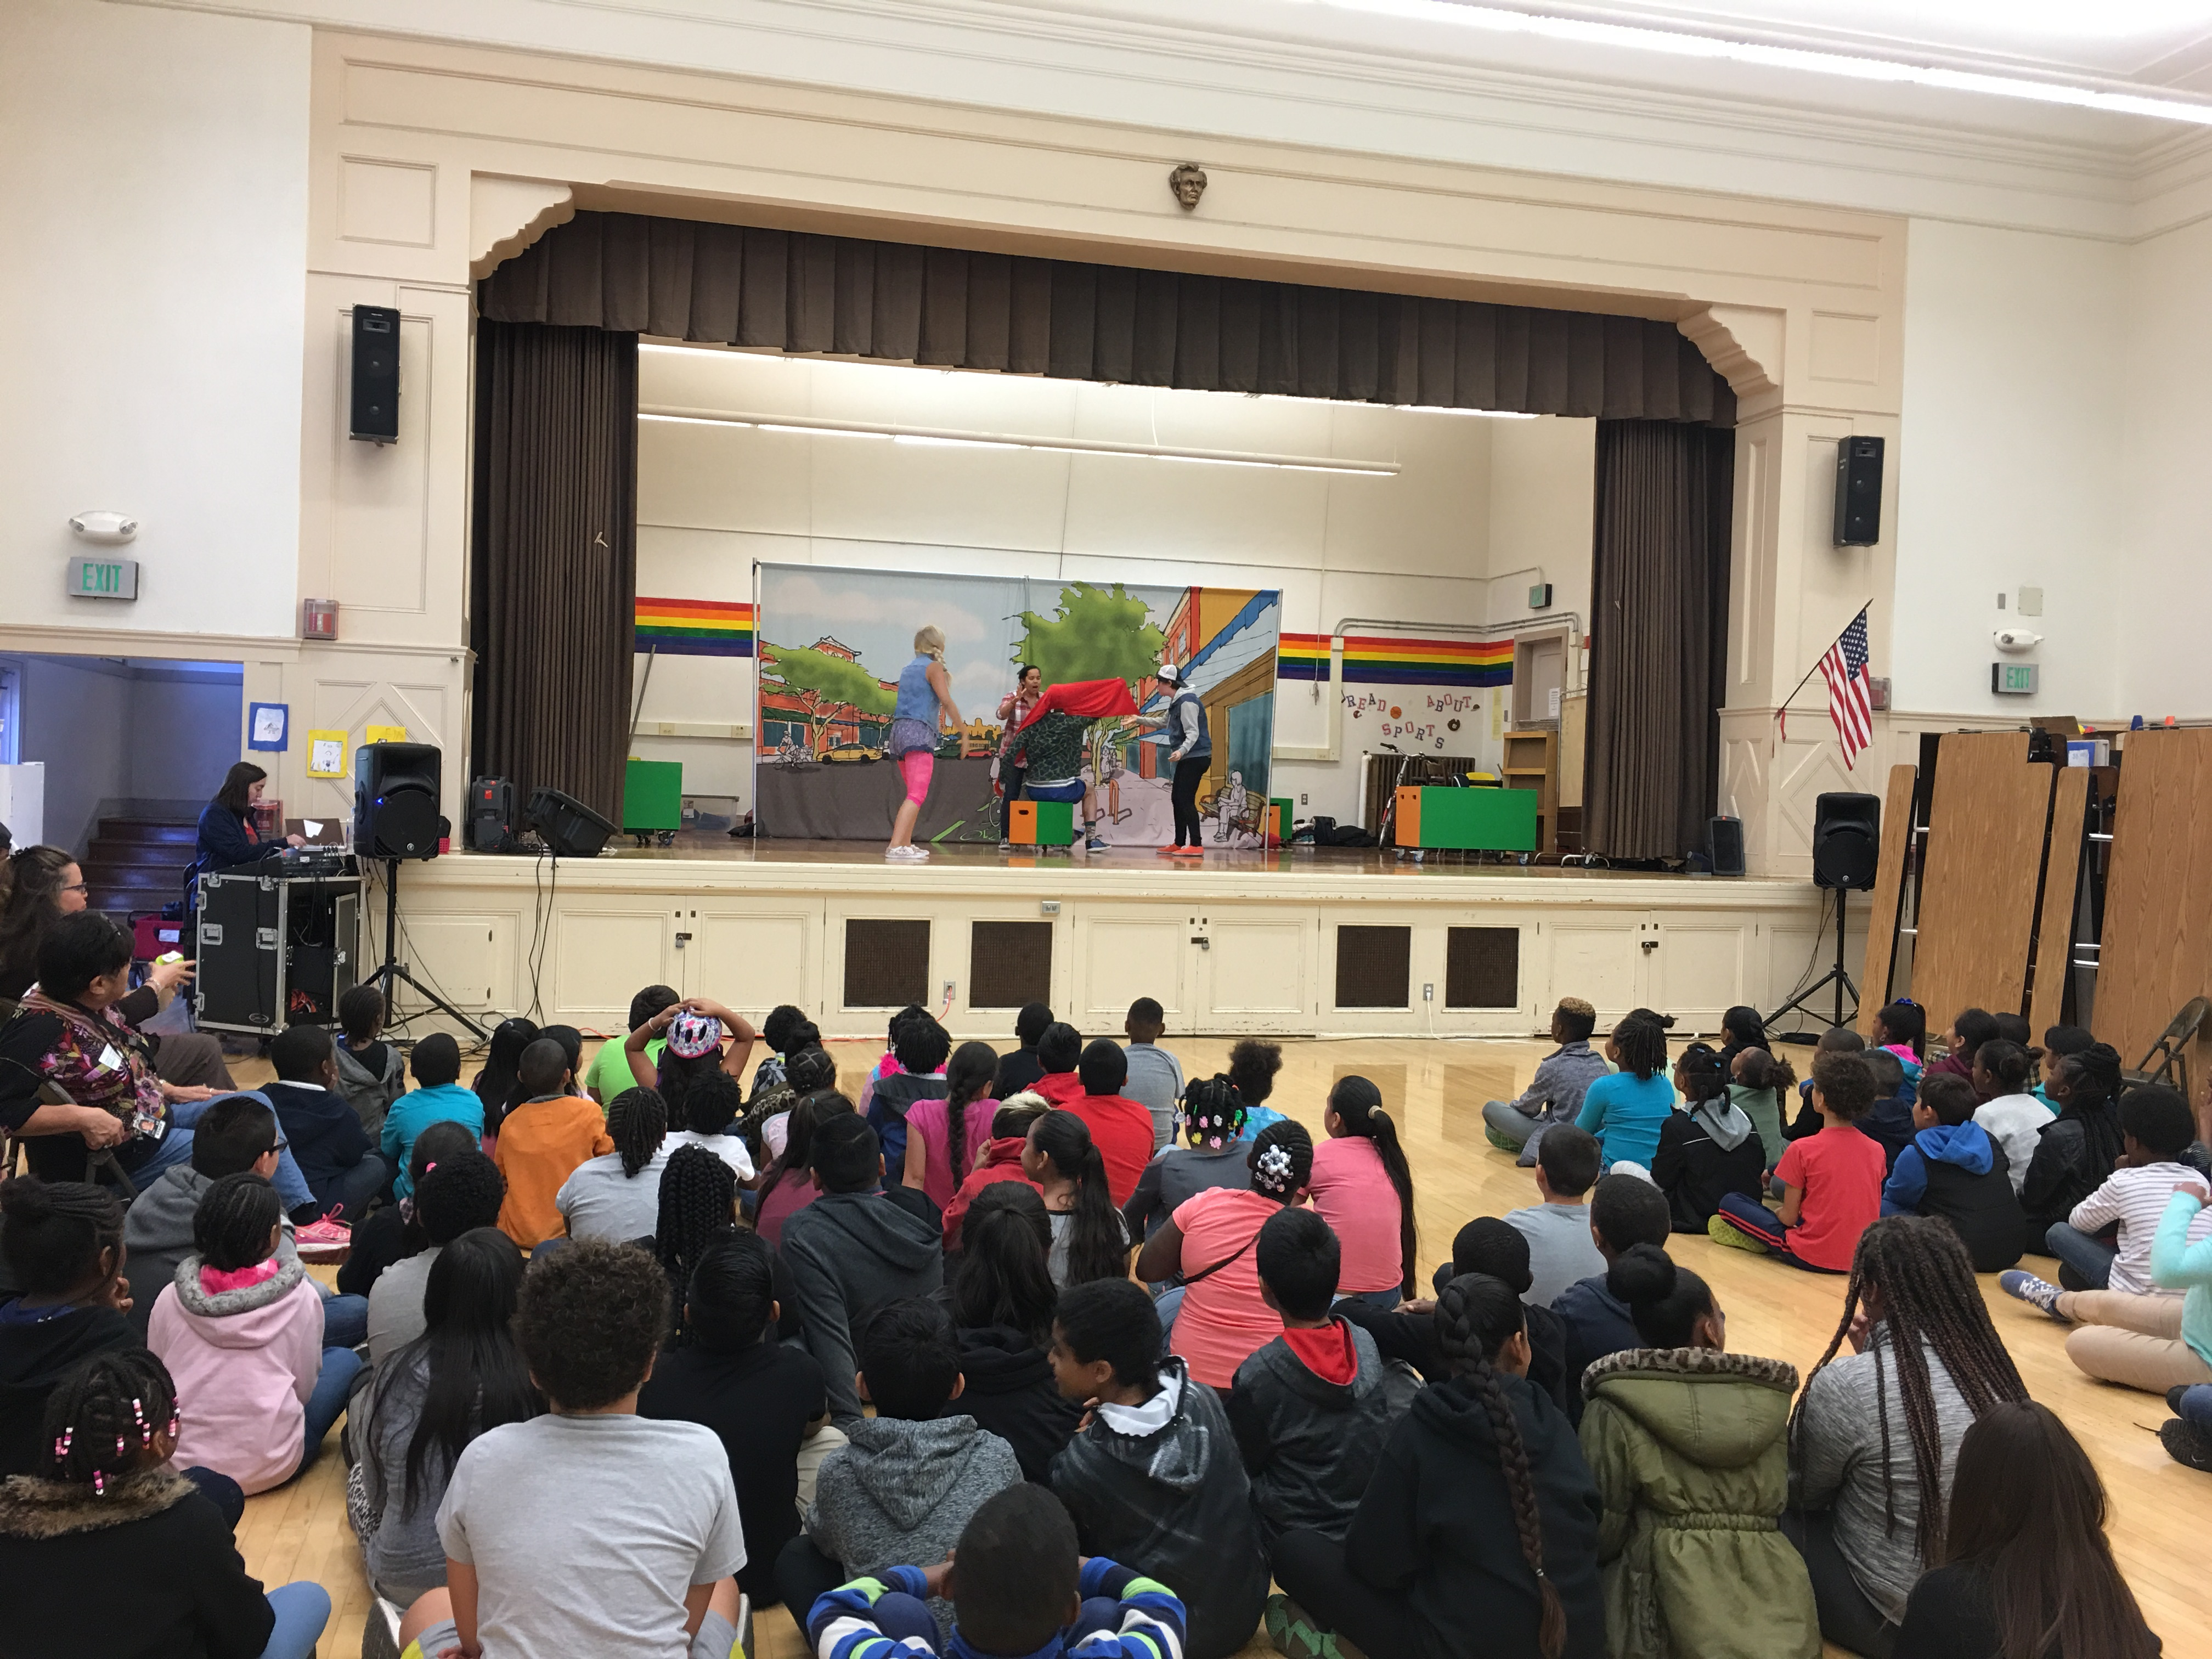 Thank you to Bay Area Childrens Theater